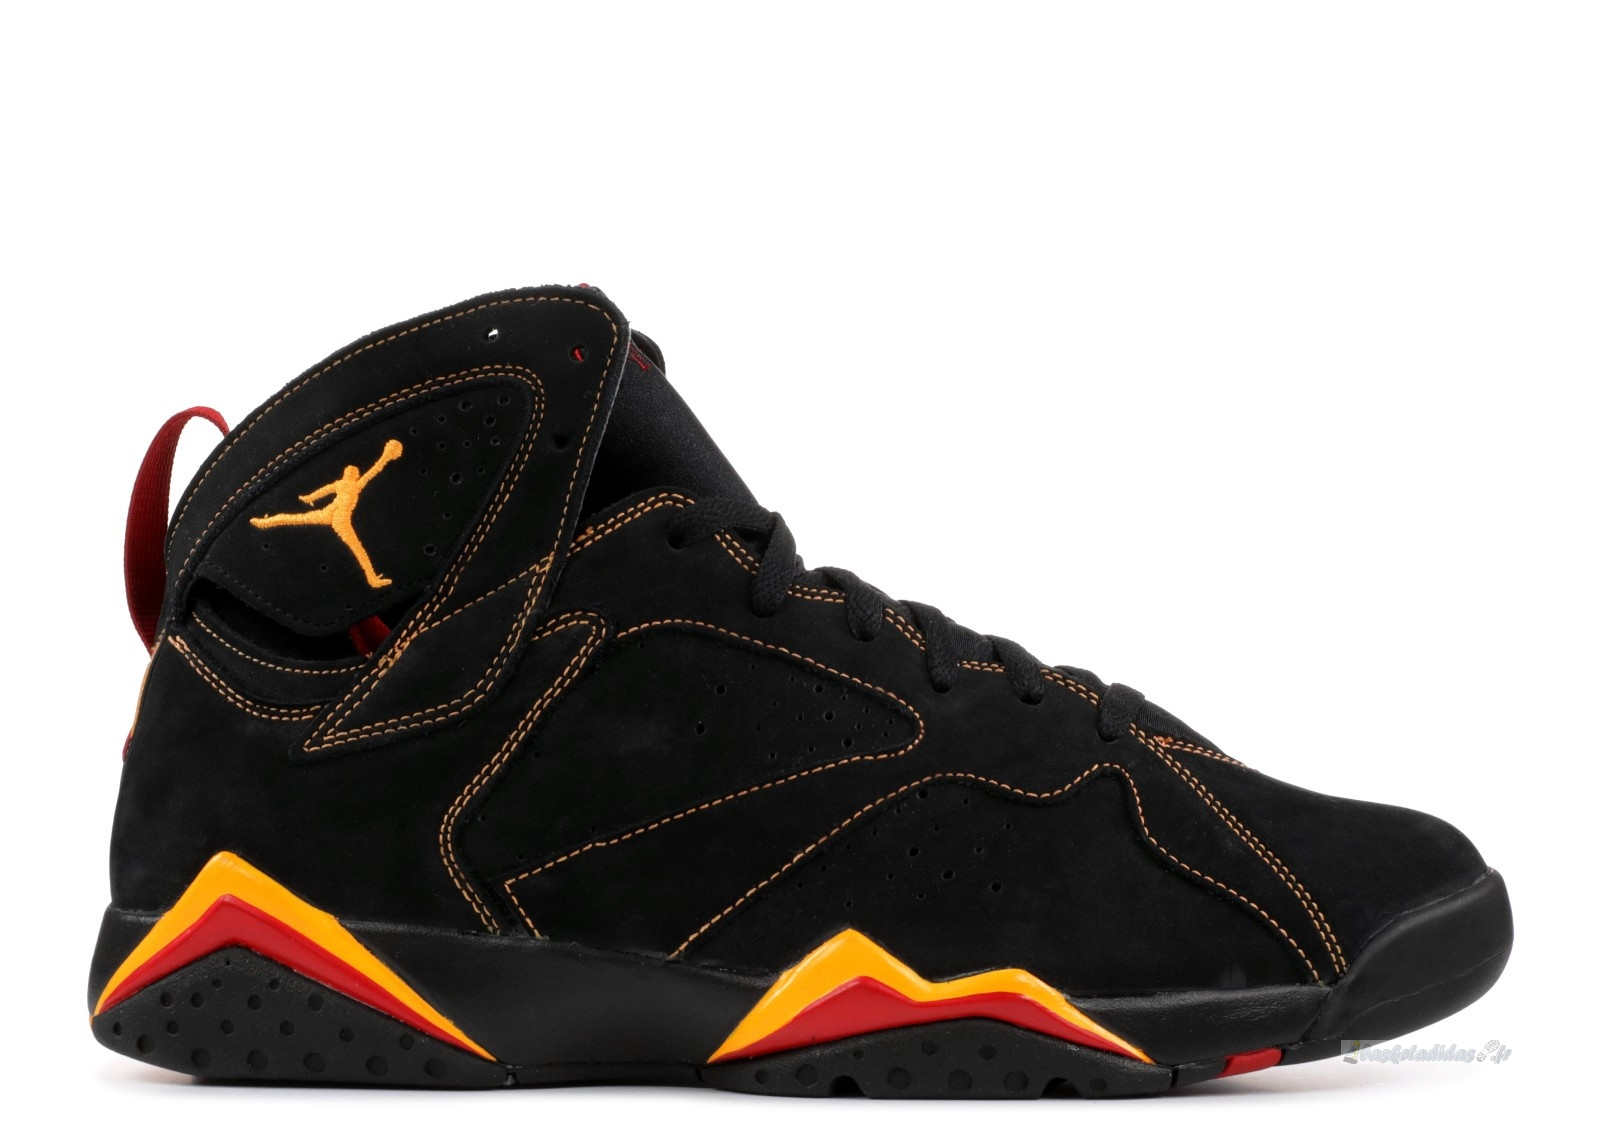 Chaussure de Basket Air Jordan 7 Retro Noir Orange Rouge (304775-081)